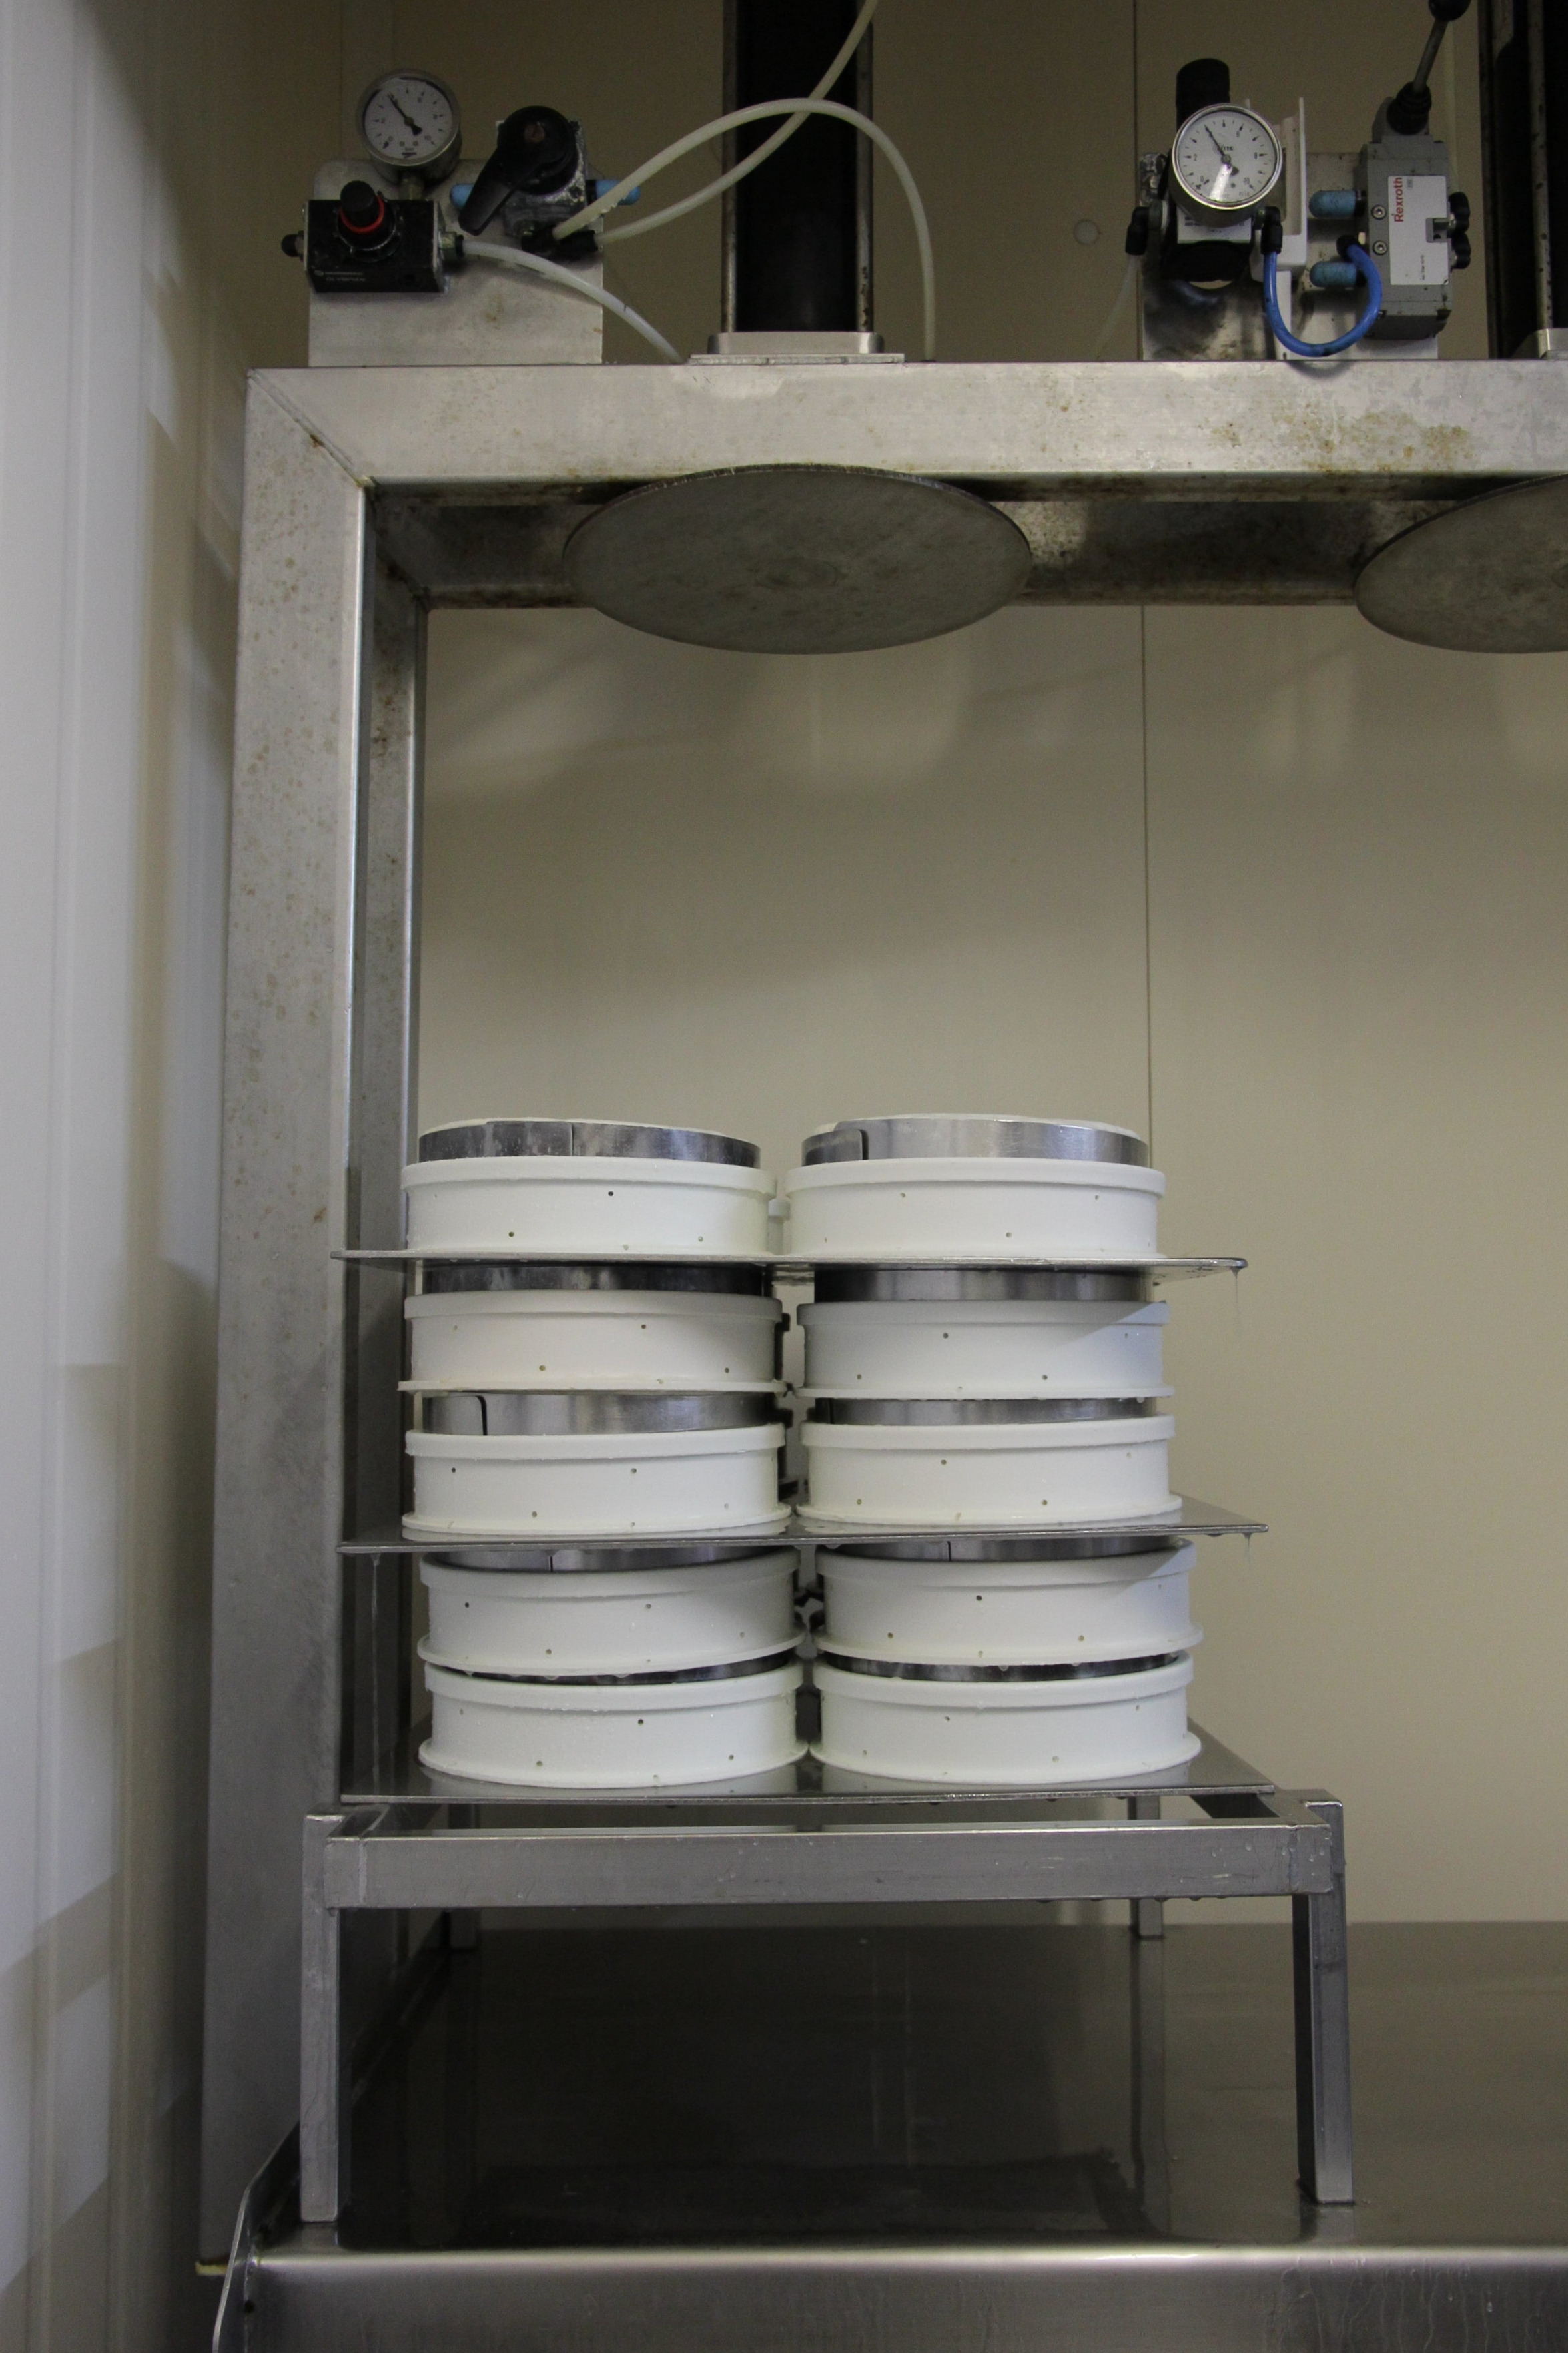 The molds are now stacked for their formal pressing.